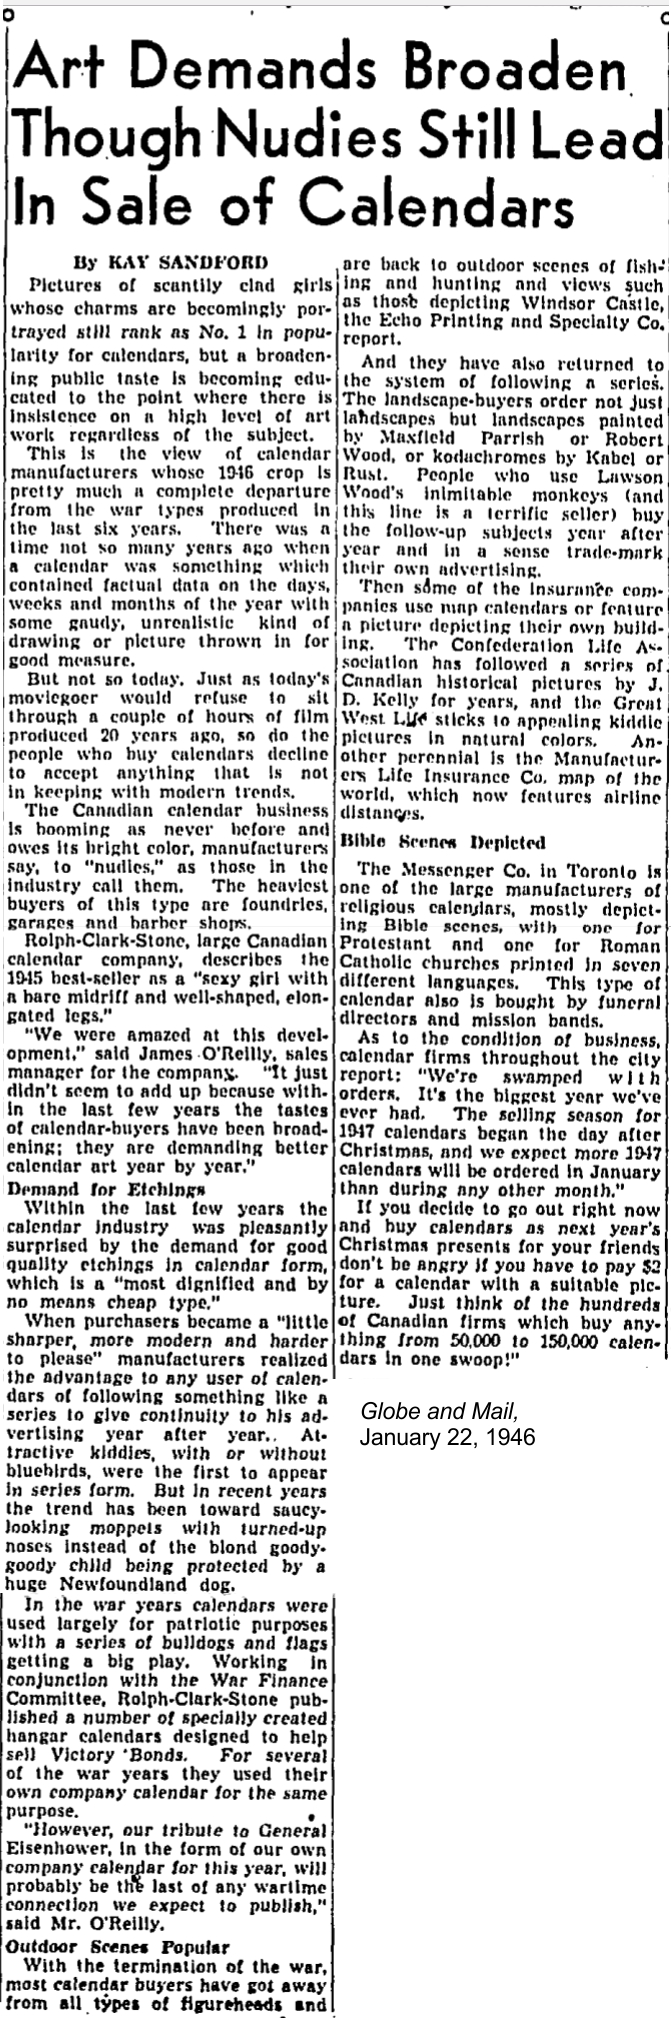 globe-and-mail-january-22-1946-calendar-article